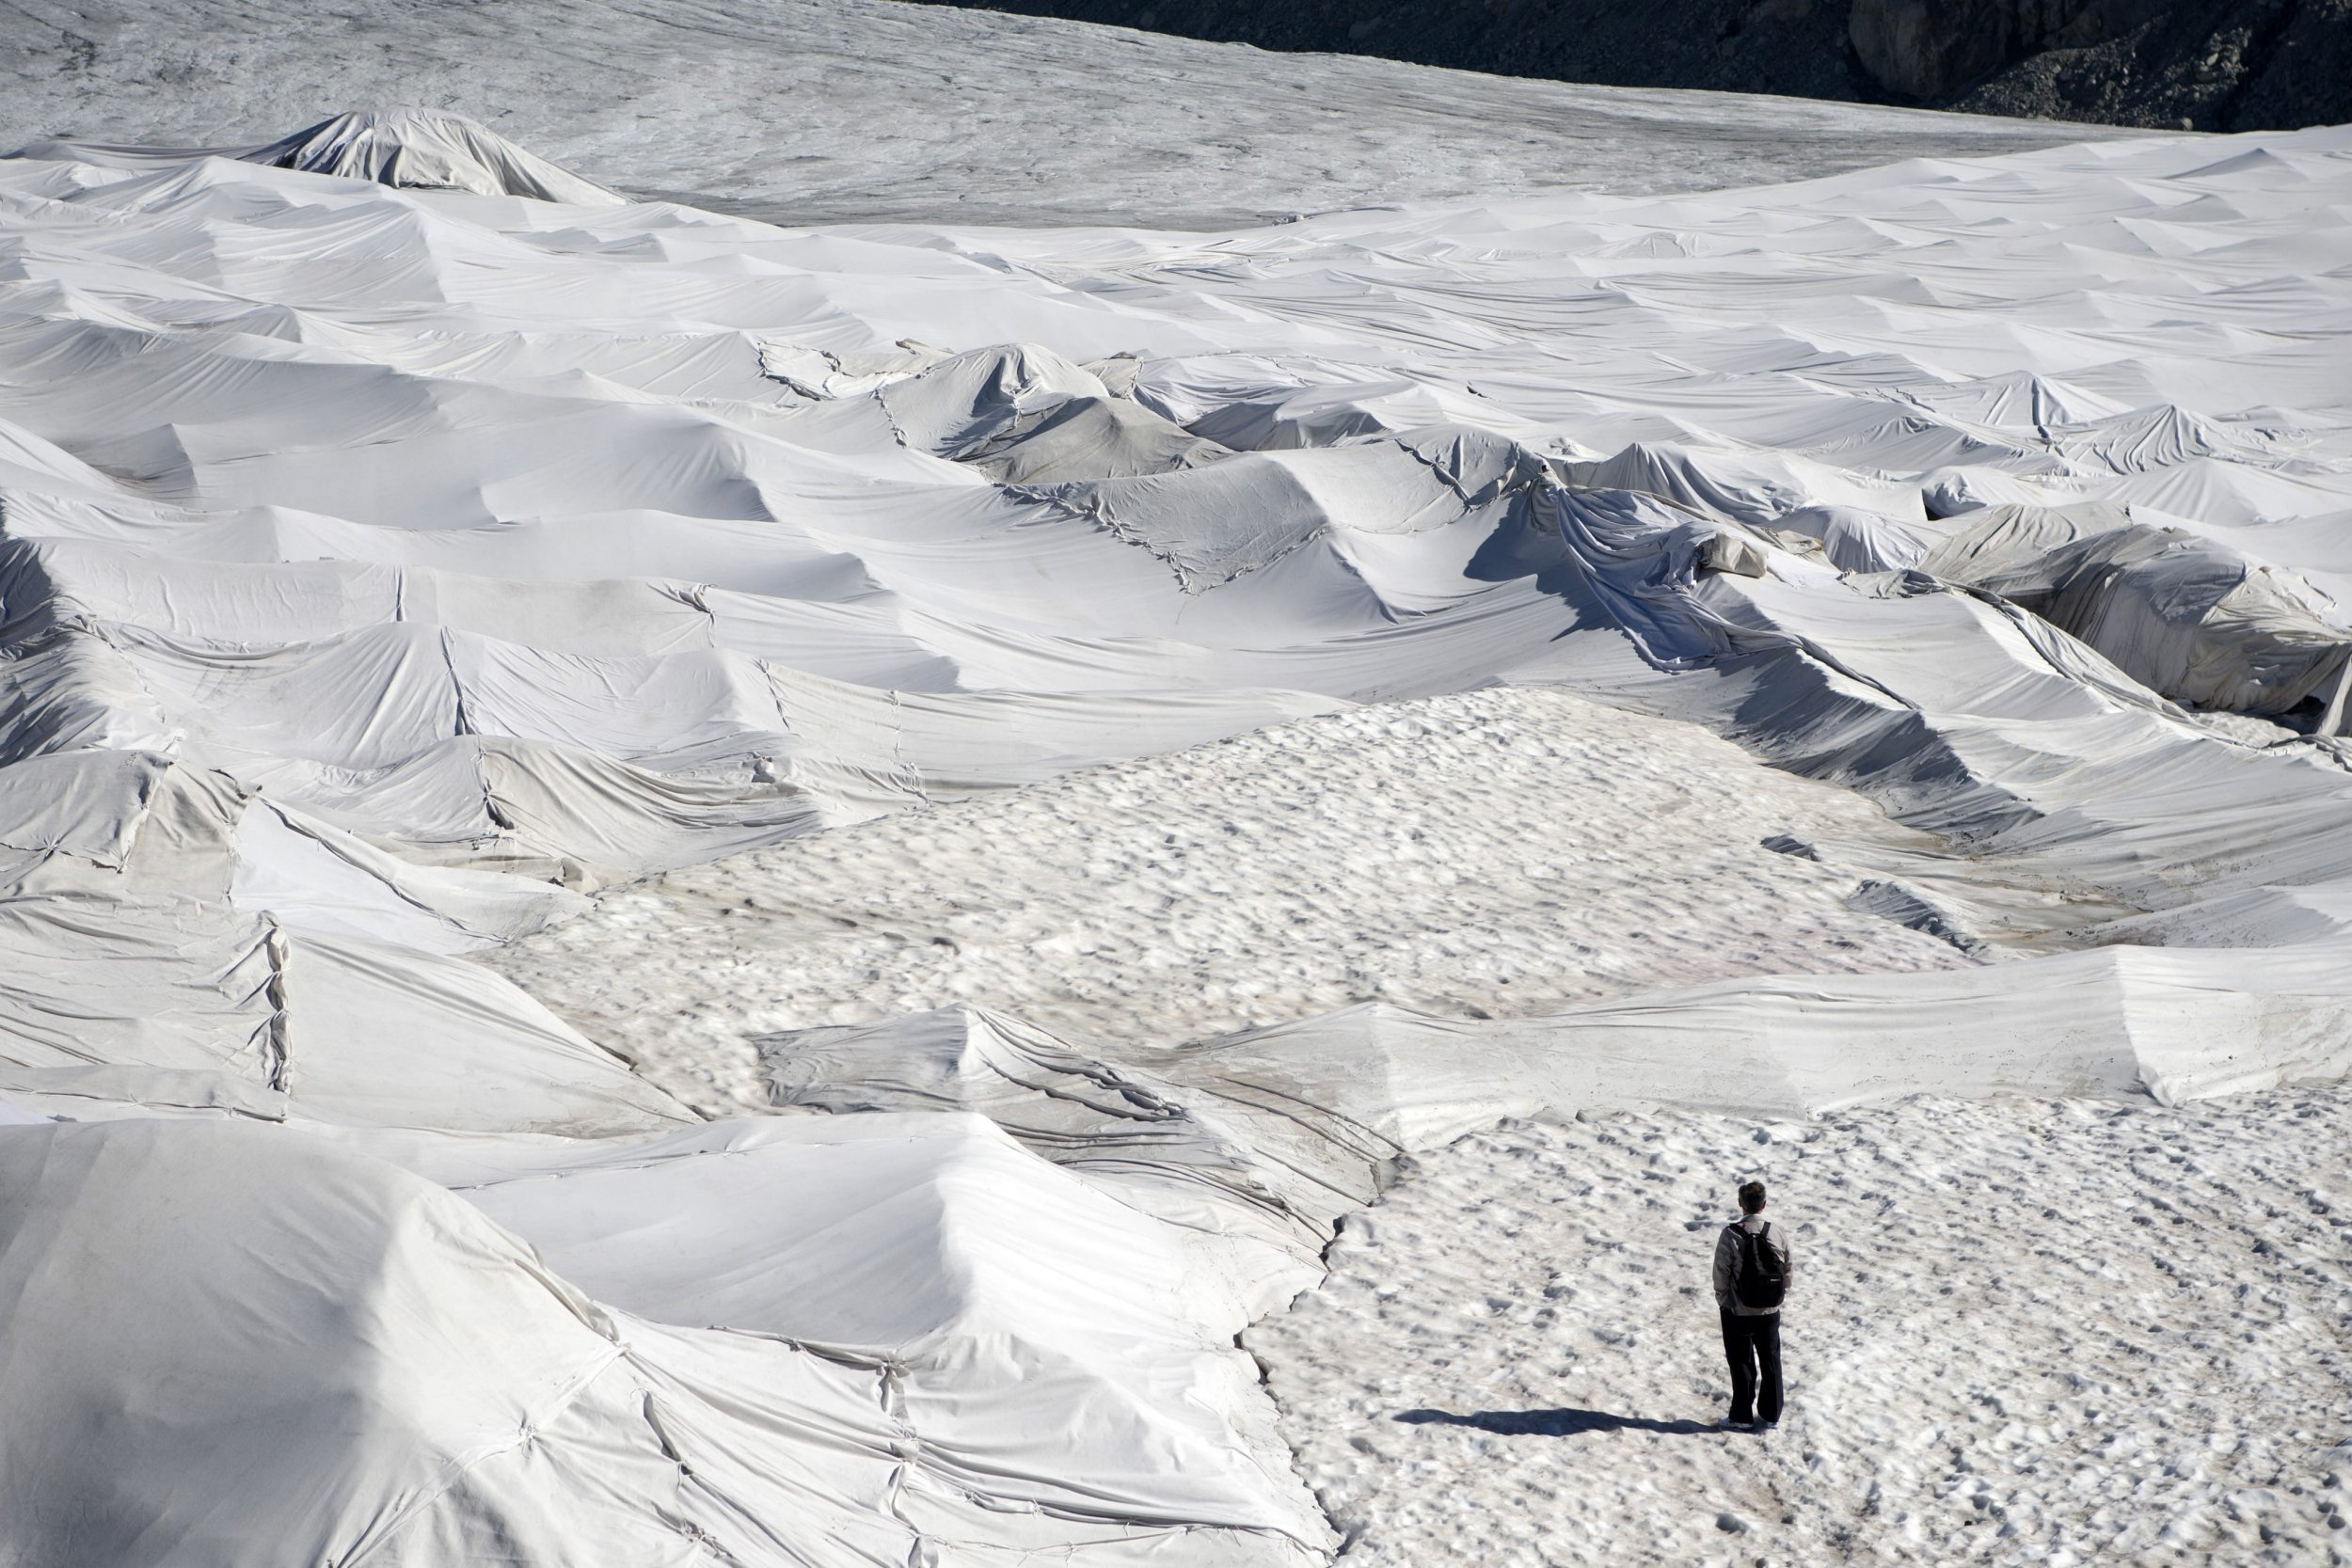 Glacier covered in blankets to stave off its inevitable melting